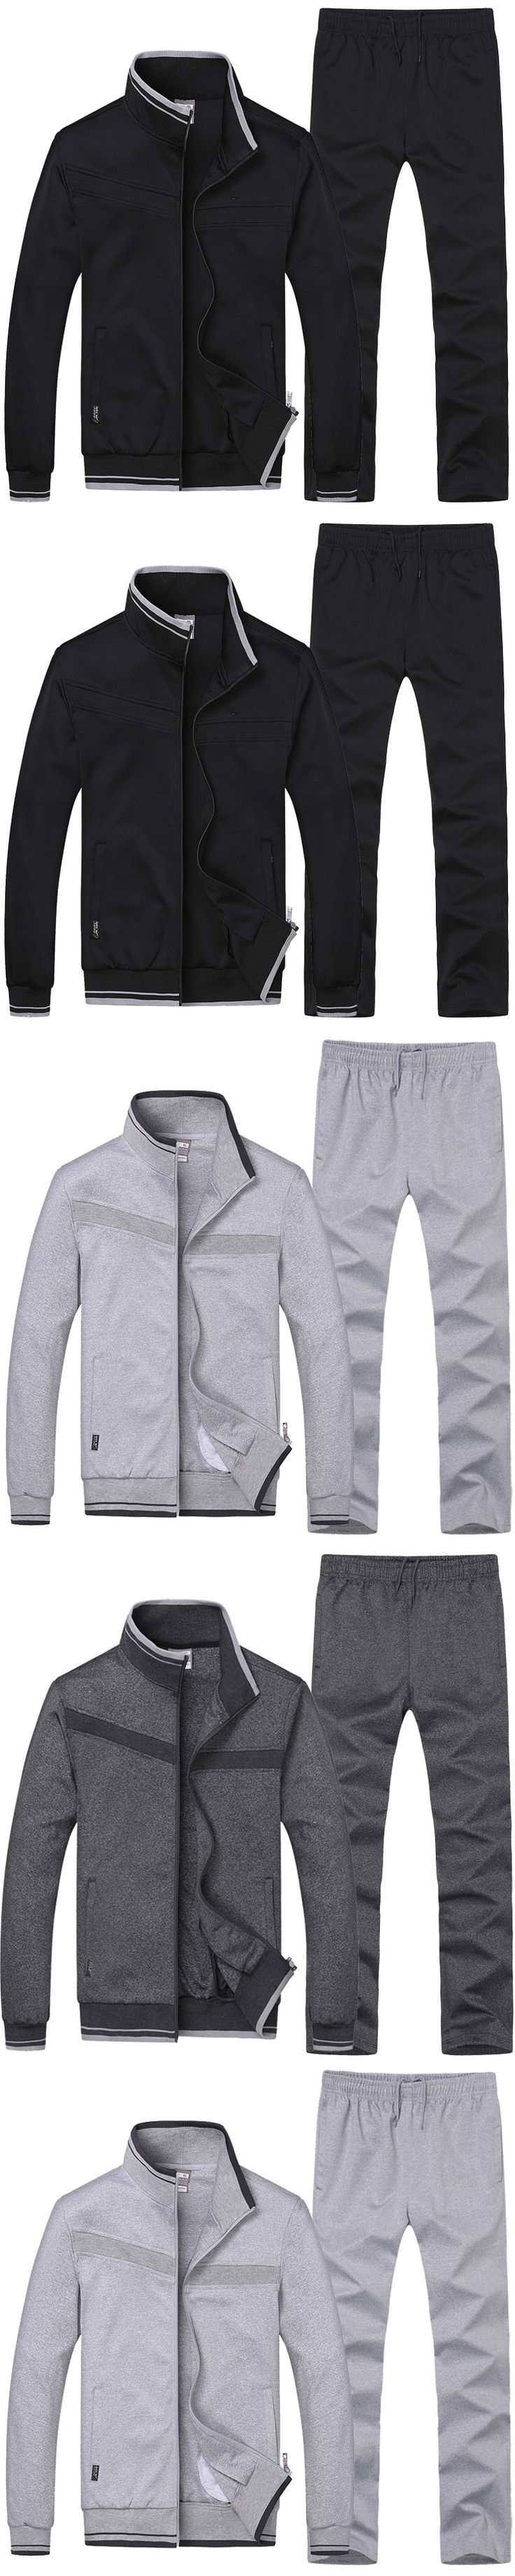 2017 Fashion Casual Men Hoodies & Sweatshirts Slim Fit Hombre Tracksuit Mens Outdoors Clothes Hoody Male Cardigan jacket+pants